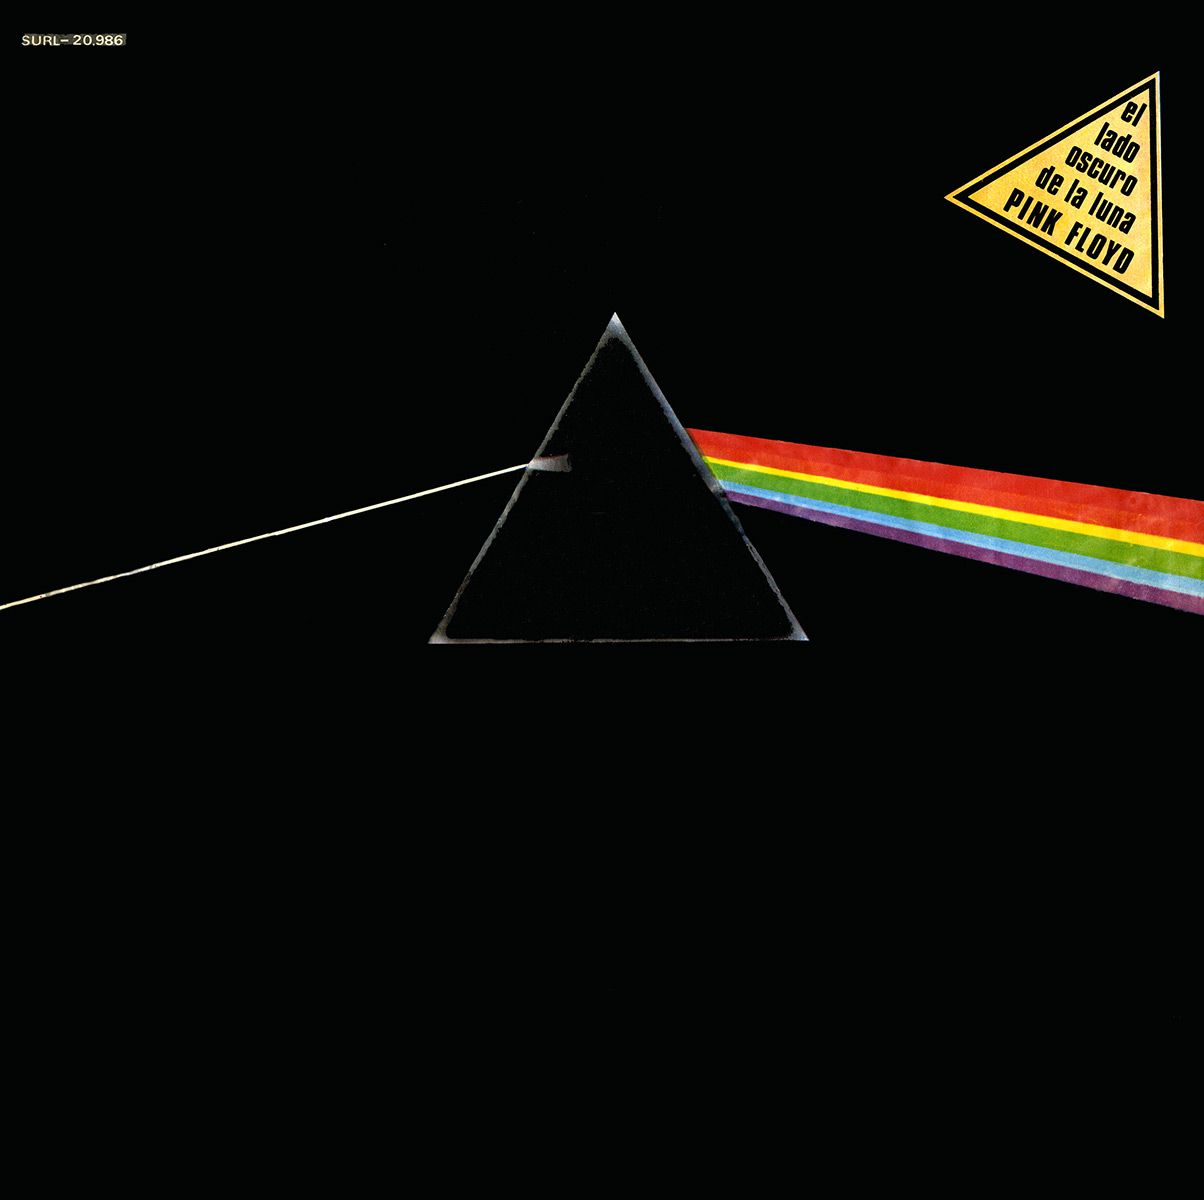 Image Result For Pink Floyd Album Cover Dark Side Of The